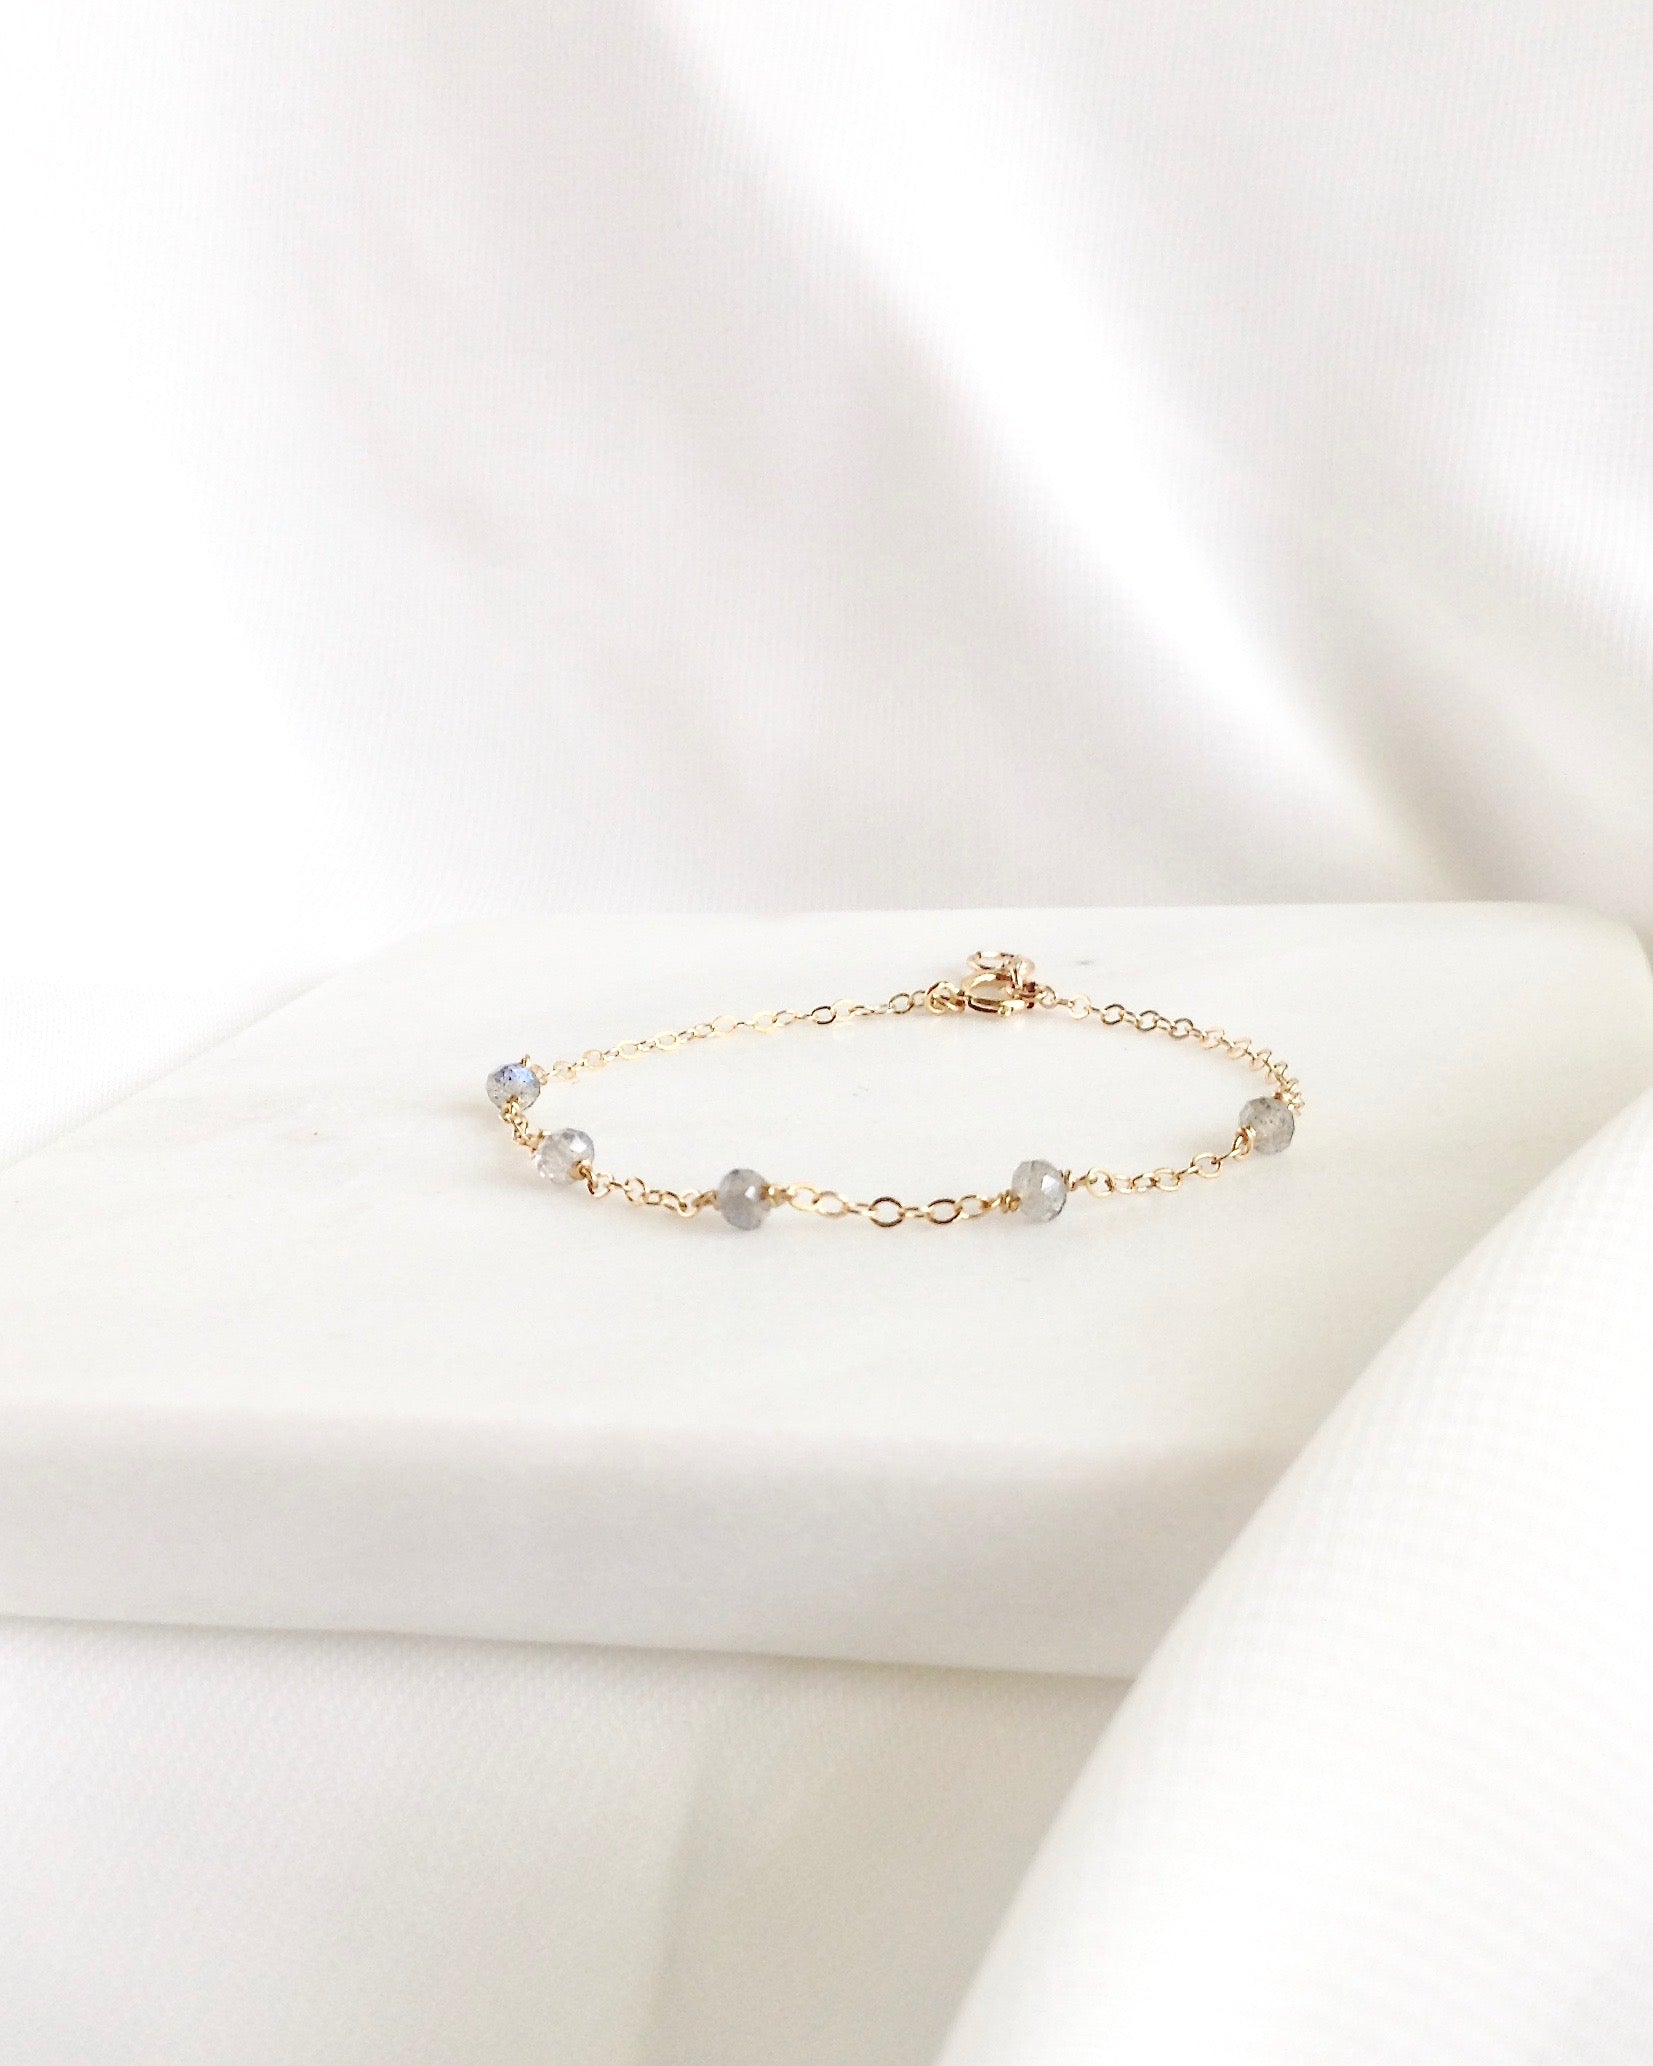 Labradorite Dainty Everyday Bracelet | Simple Delicate Chain Bracelet | IB Jewelry